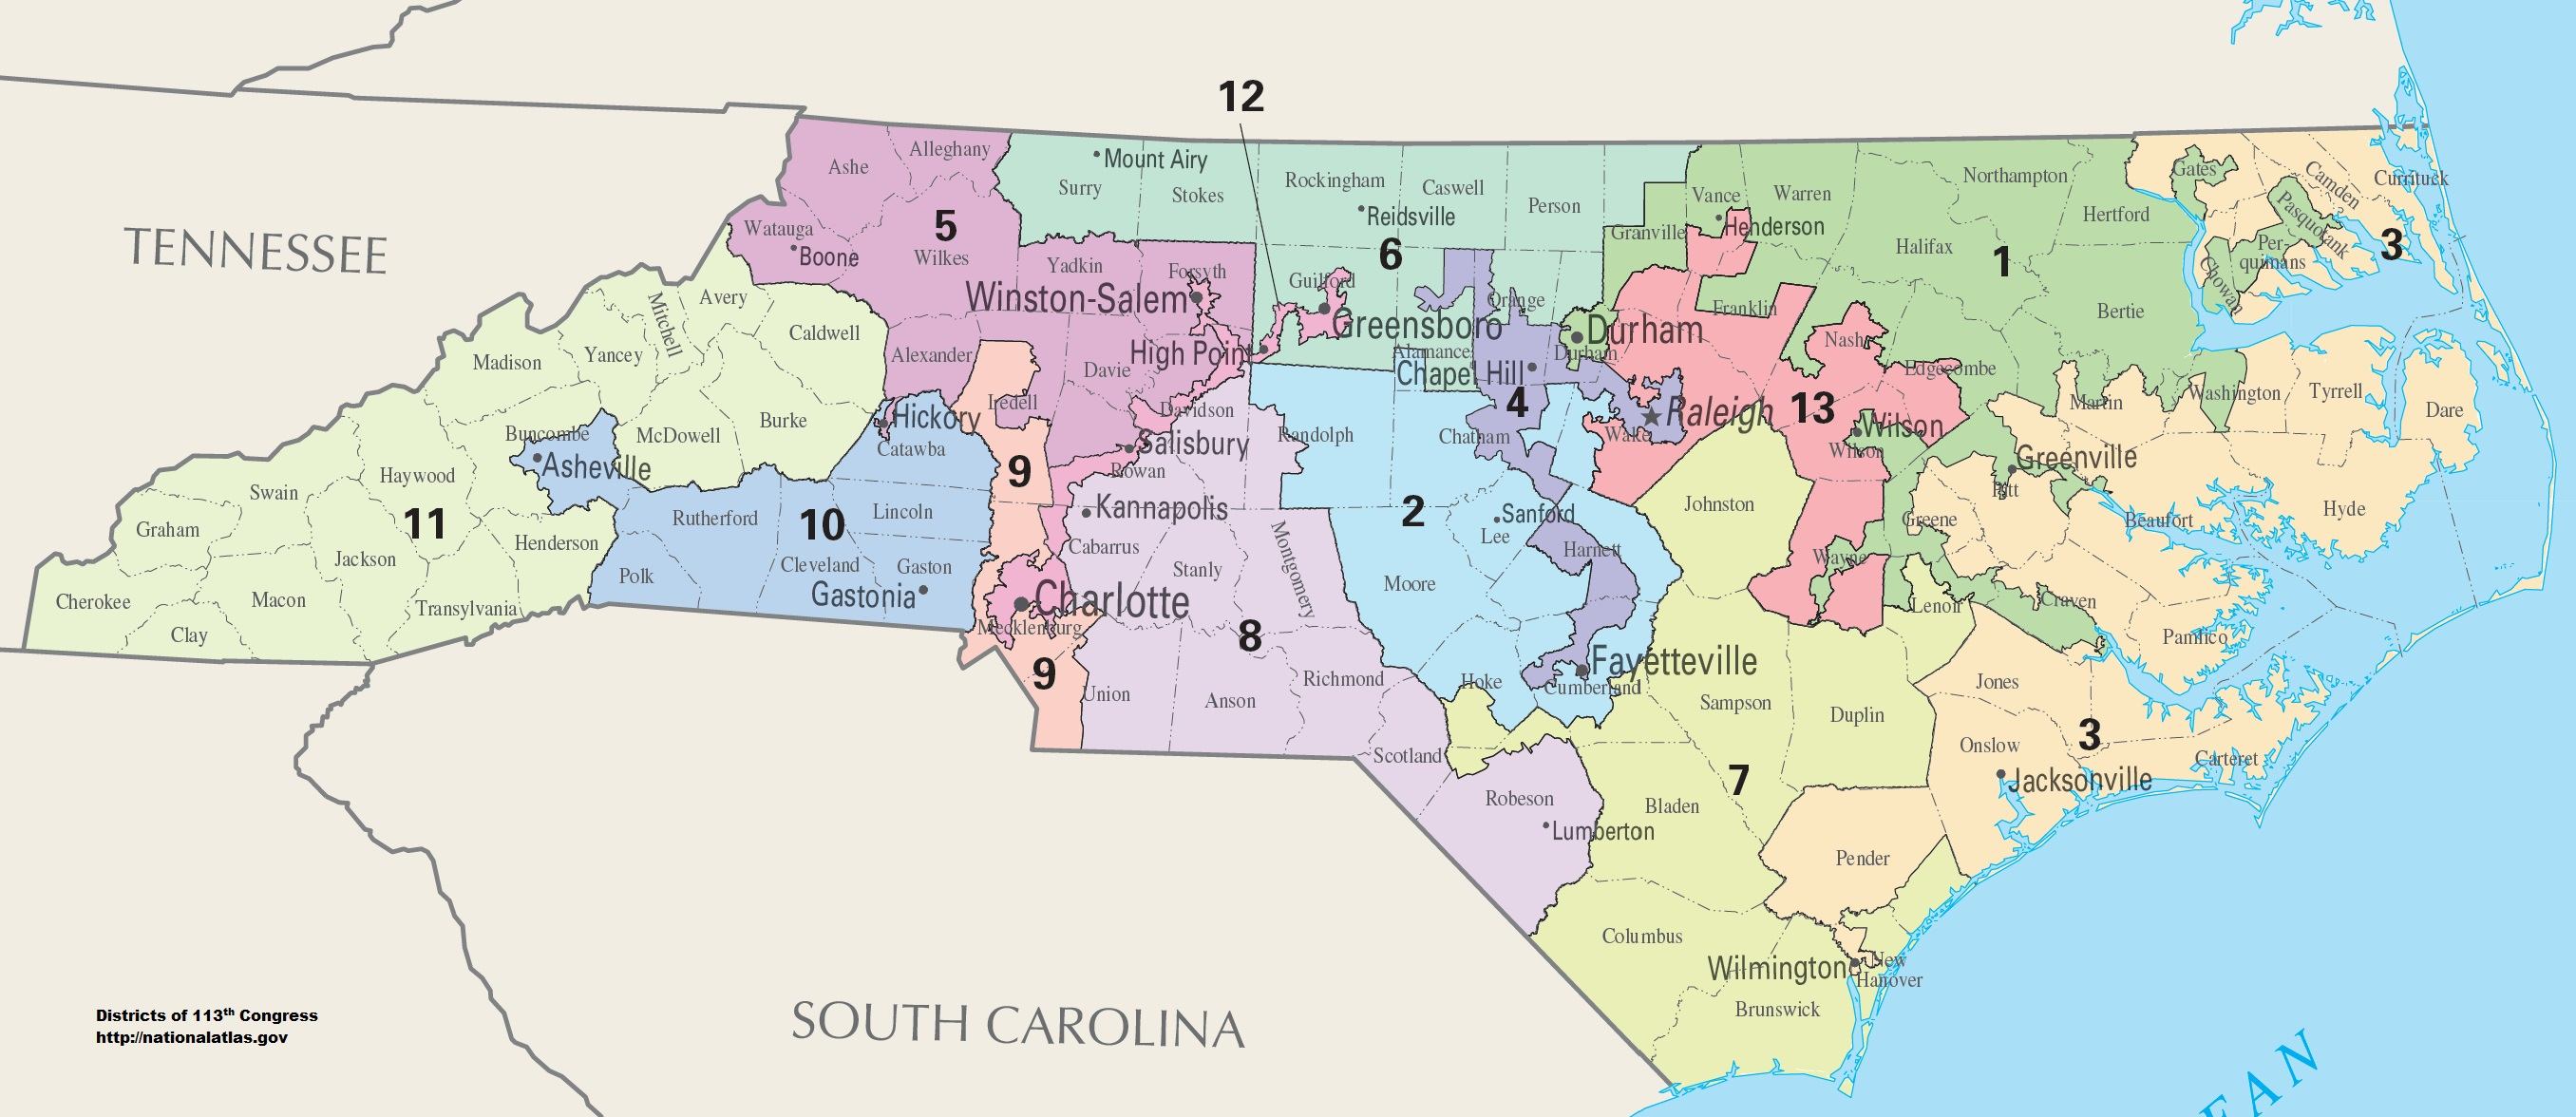 North_Carolina_Congressional_Districts__113th_Congress.jpg